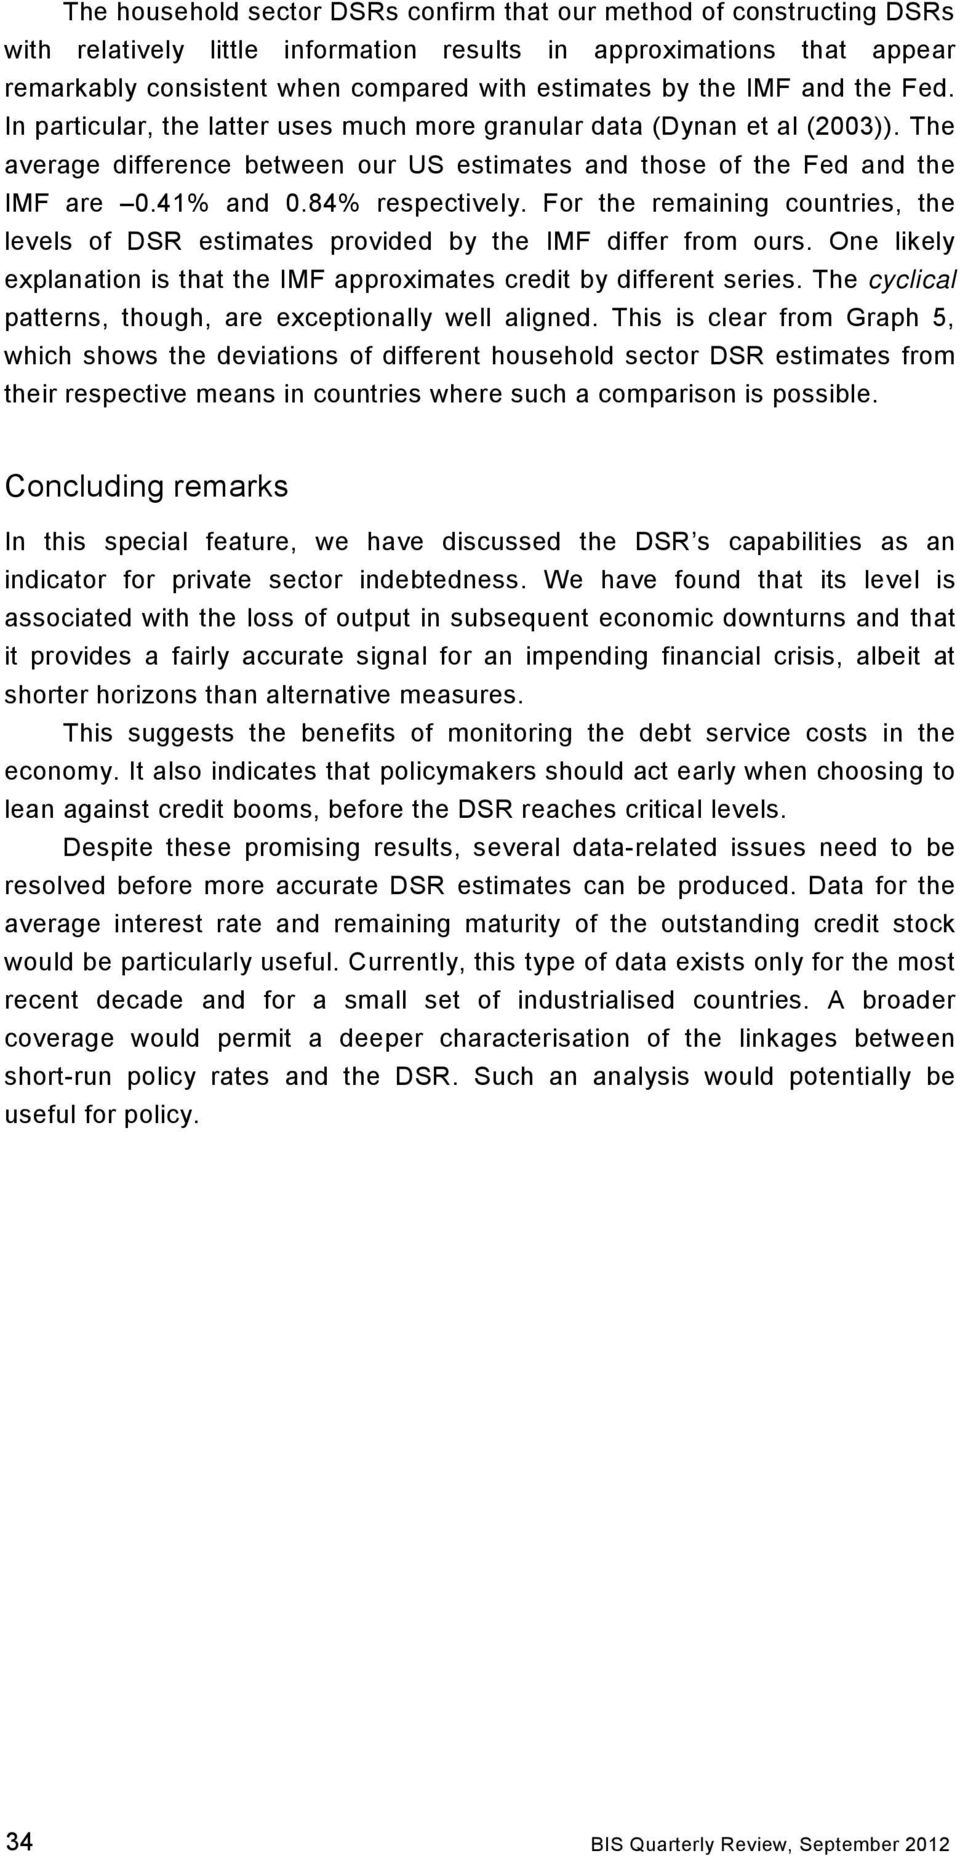 84% respectively. For the remaining countries, the levels of DSR estimates provided by the IMF differ from ours. One likely explanation is that the IMF approximates credit by different series.